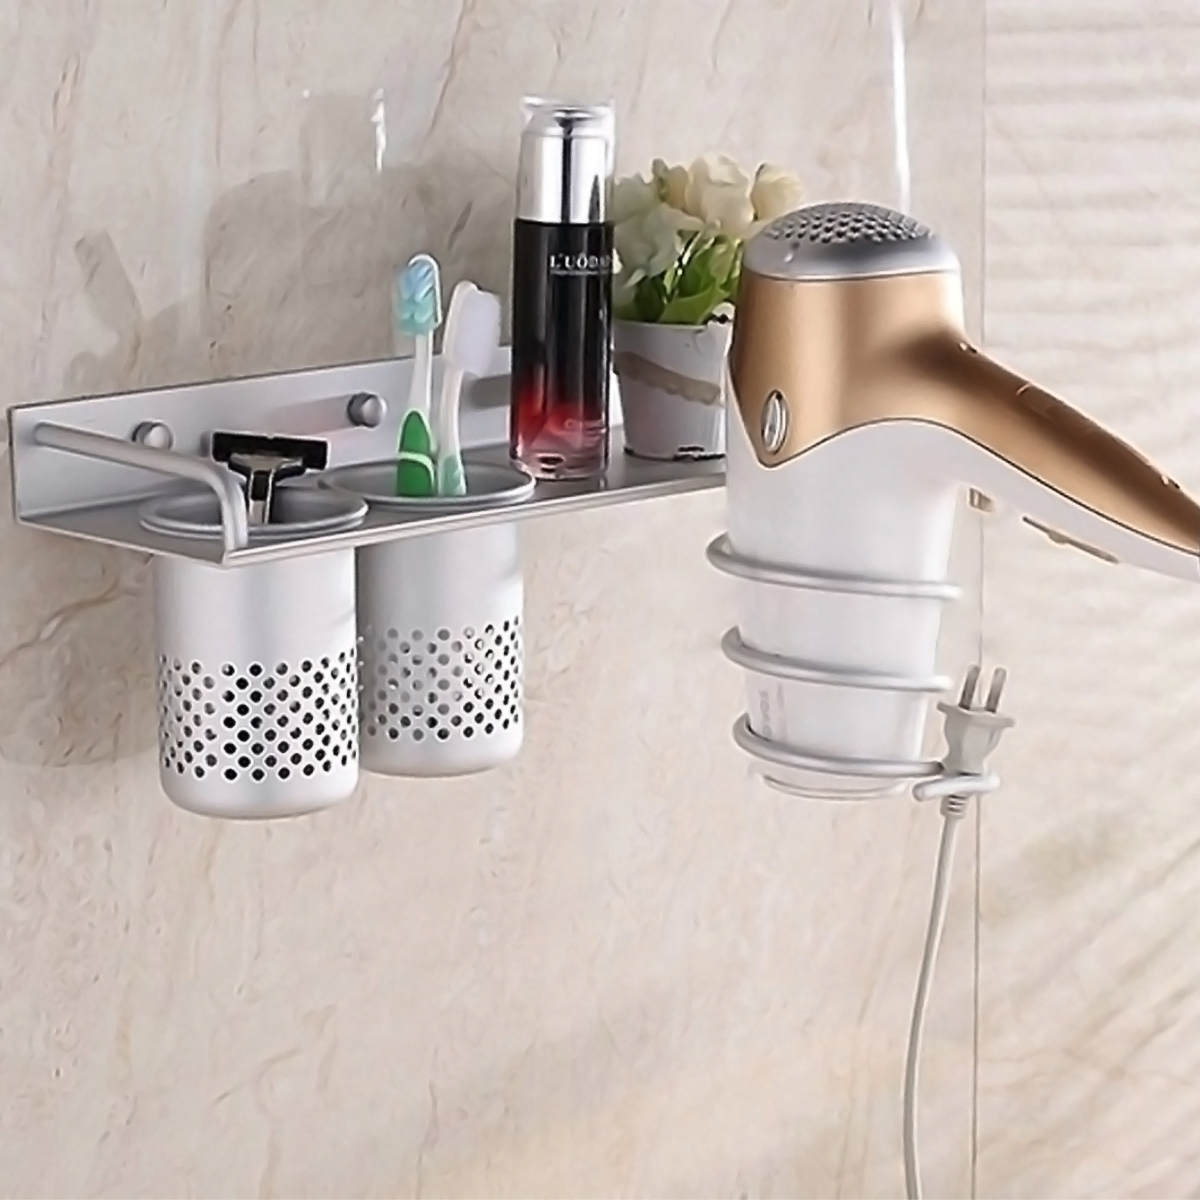 Multifunction Hair Dryer Stands Wall Mounted Aluminum Bathroom Organizer shelf with 2 cups